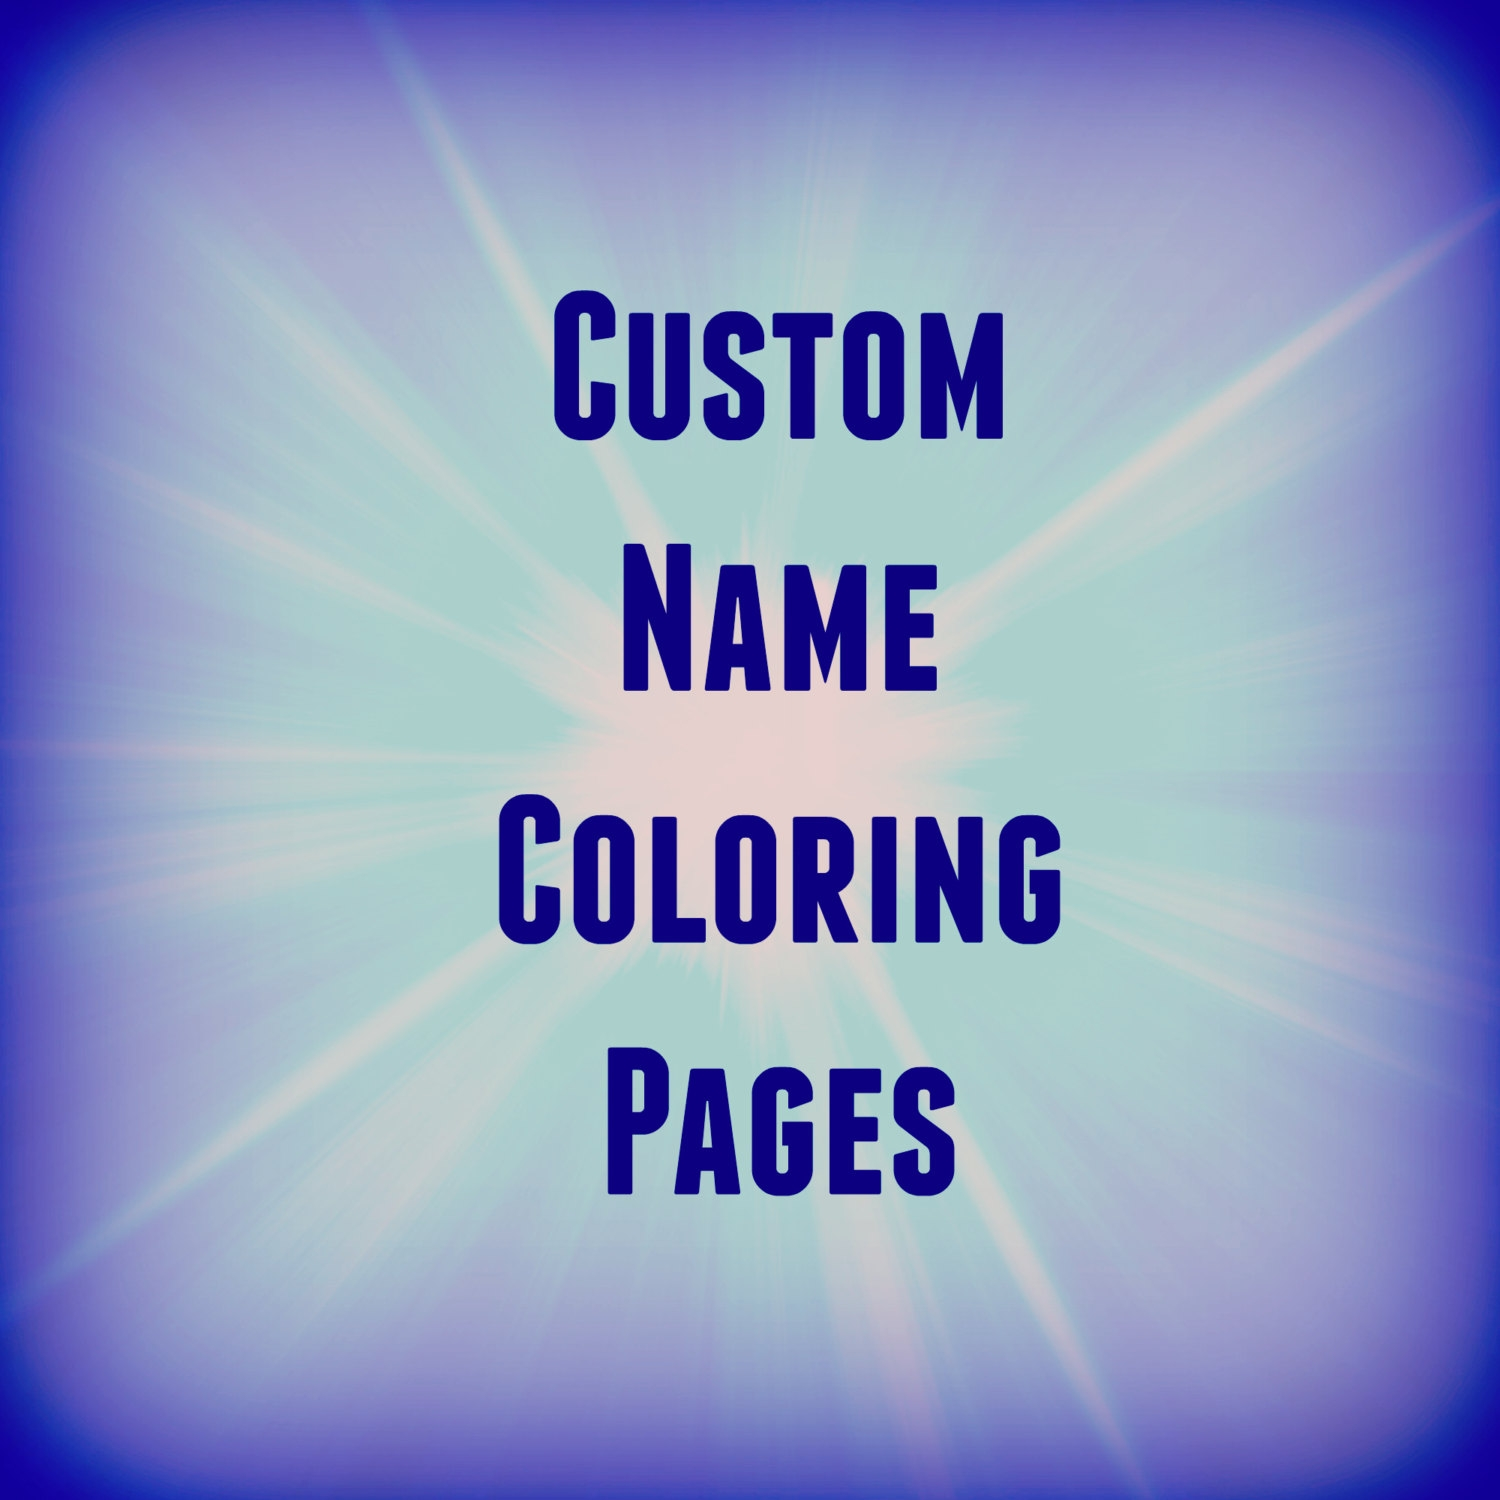 25 name coloring pages selection - Name Coloring Pages 2